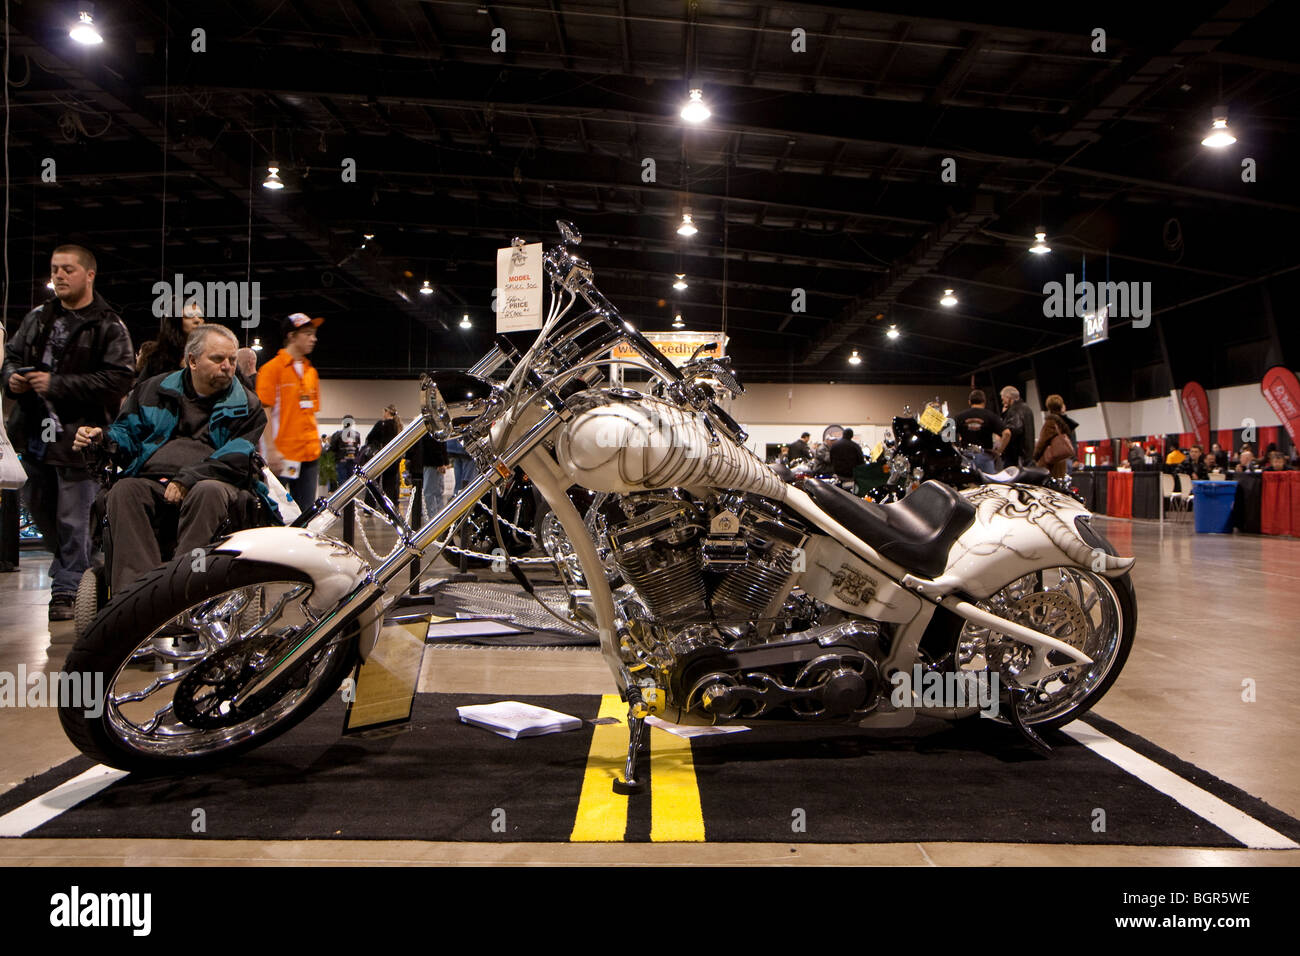 A Customized Motorcycle Or Chopper With Custom Paint Job On Display And For Sale In